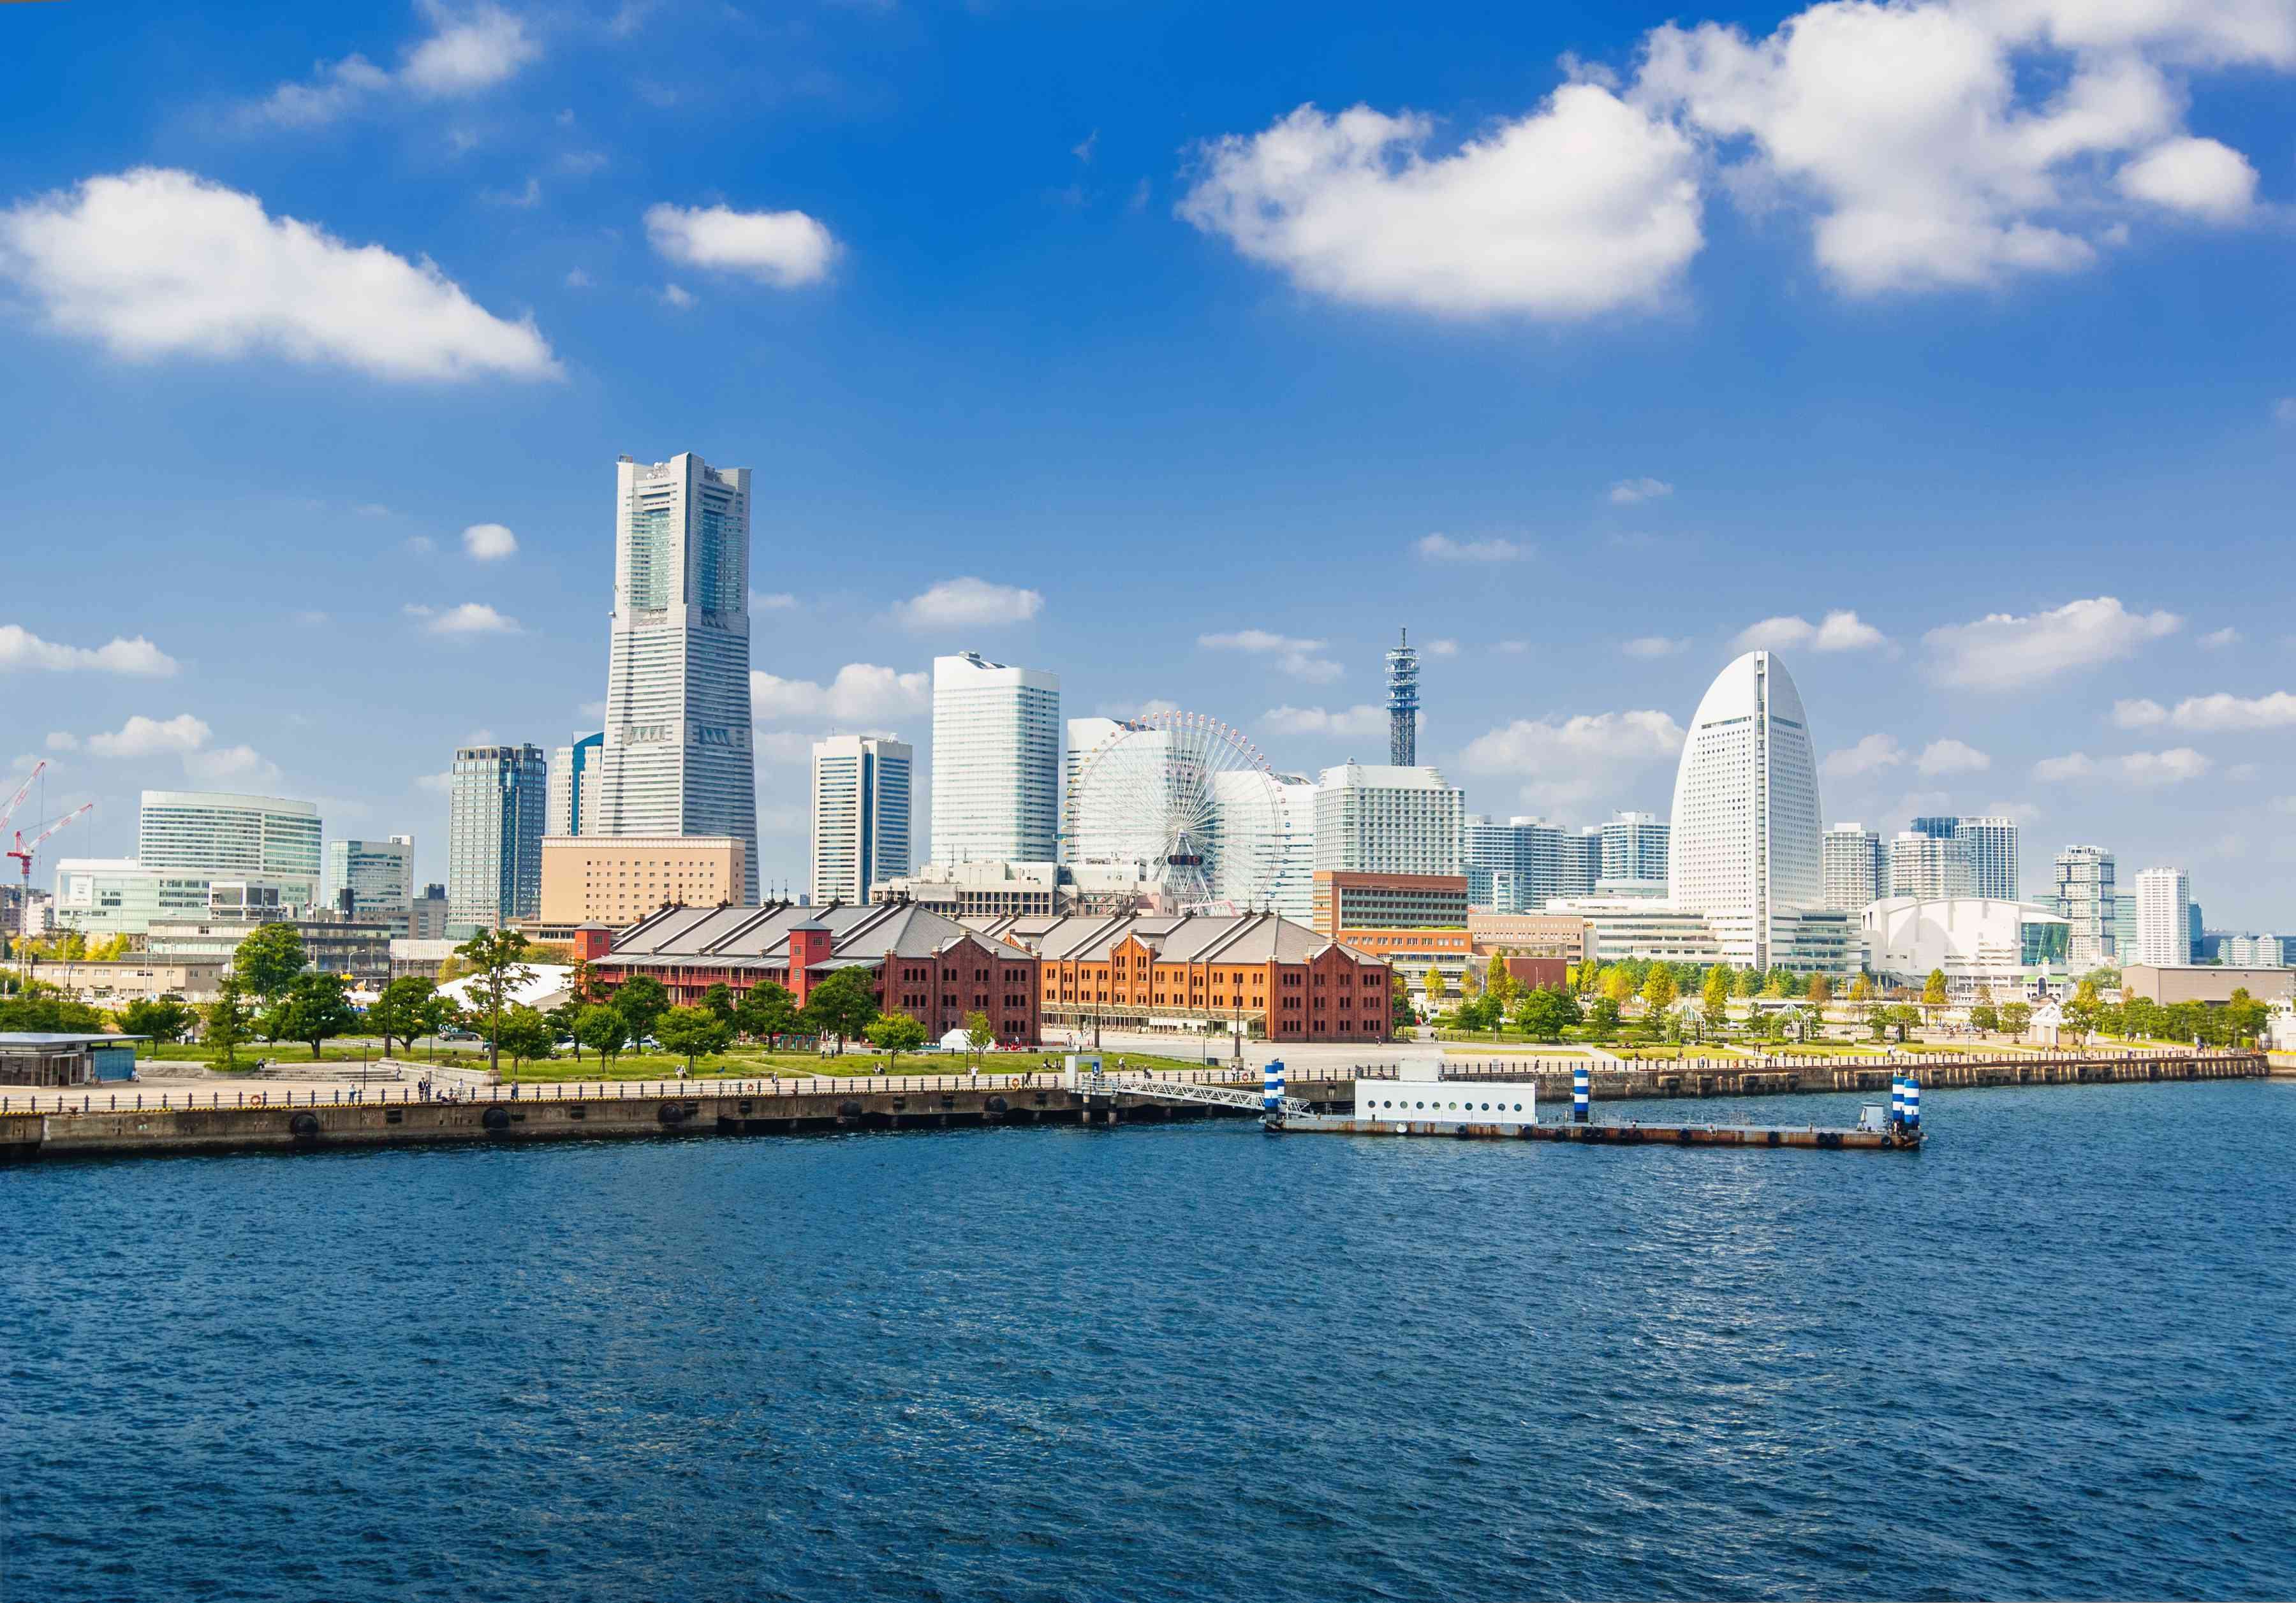 The skyline of Yokohama with the Landmark Tower, Queen's Square and the ferries wheel with the Aka-Rengo Soko warehouse